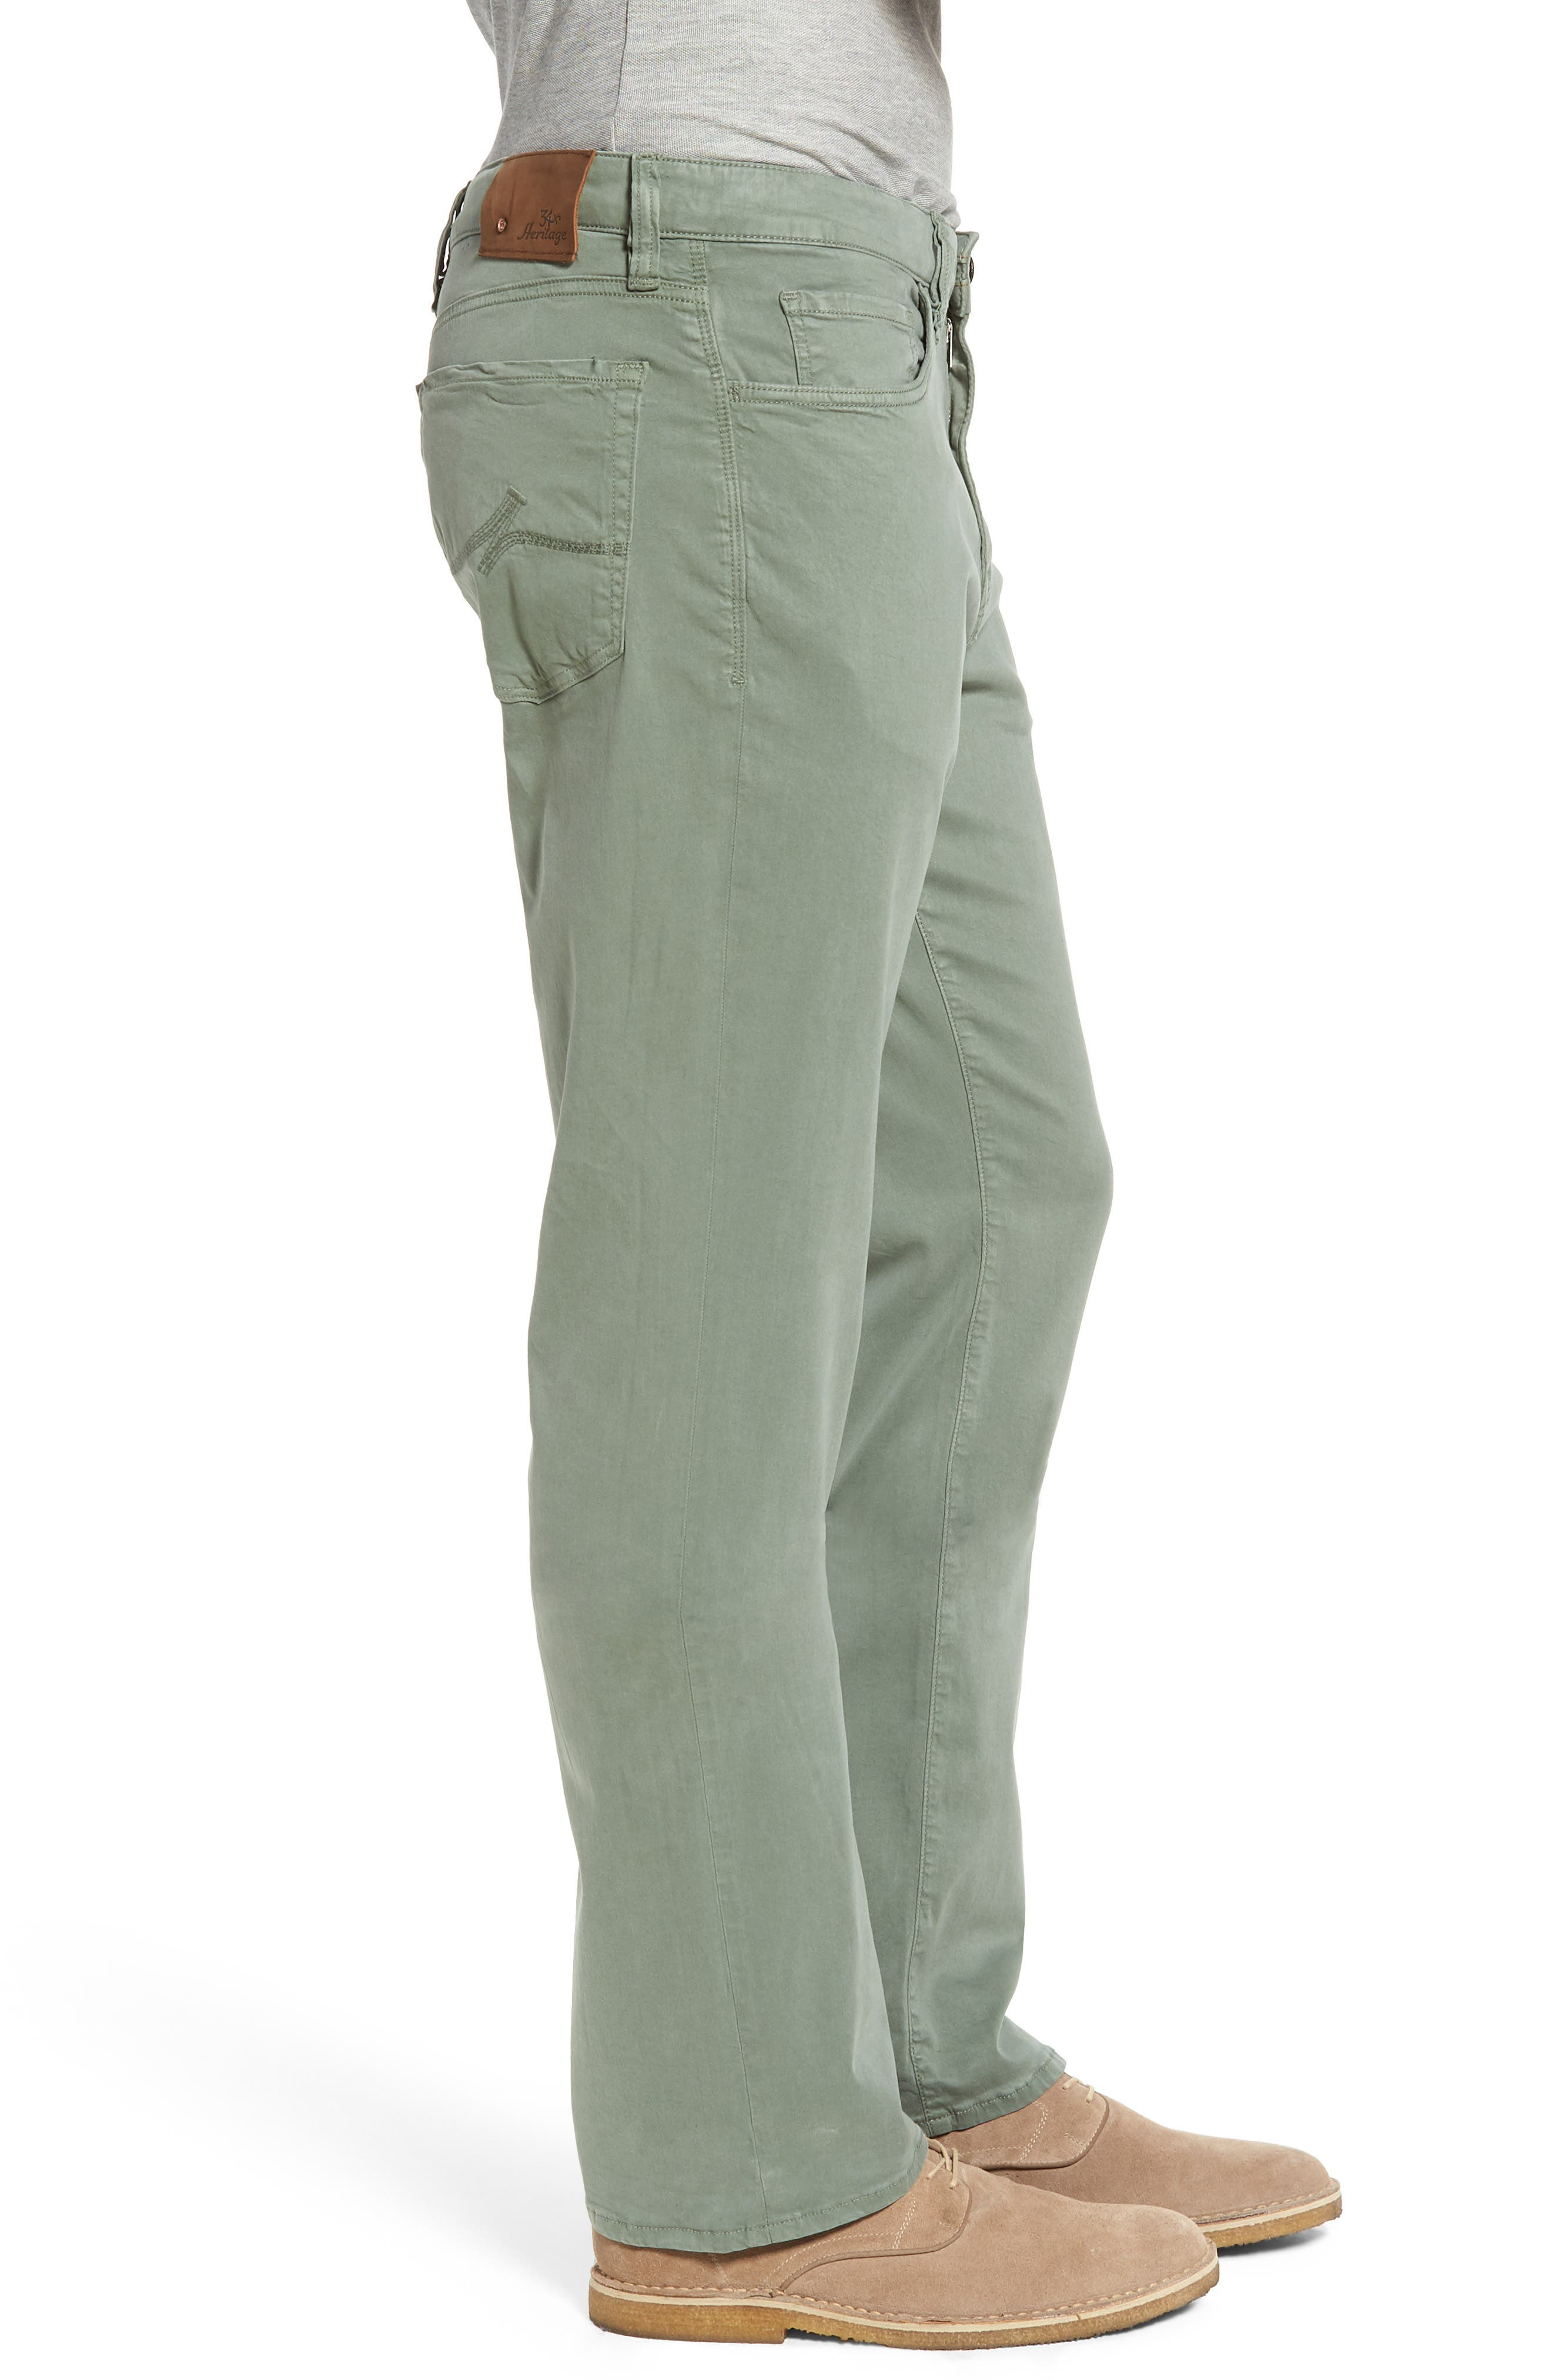 34 HERITAGE,                             Charisma Relaxed Fit Twill Pants,                             Alternate thumbnail 3, color,                             MOSS TWILL